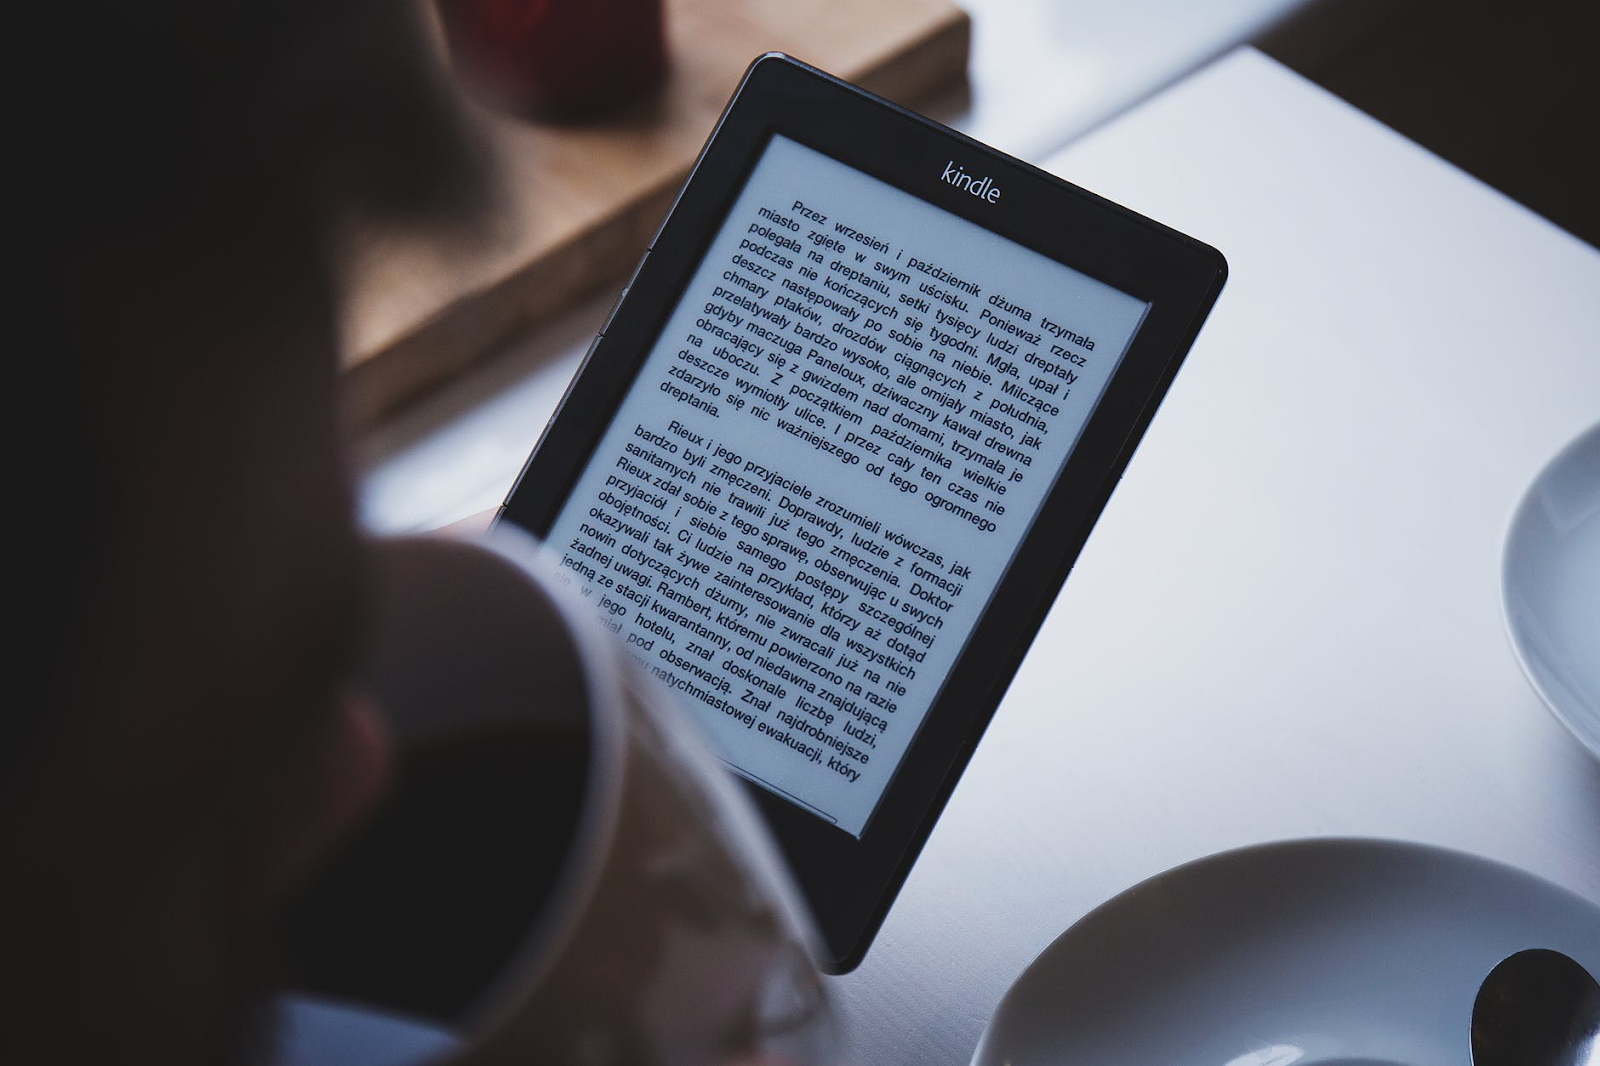 Kindle: ebooks in 2021